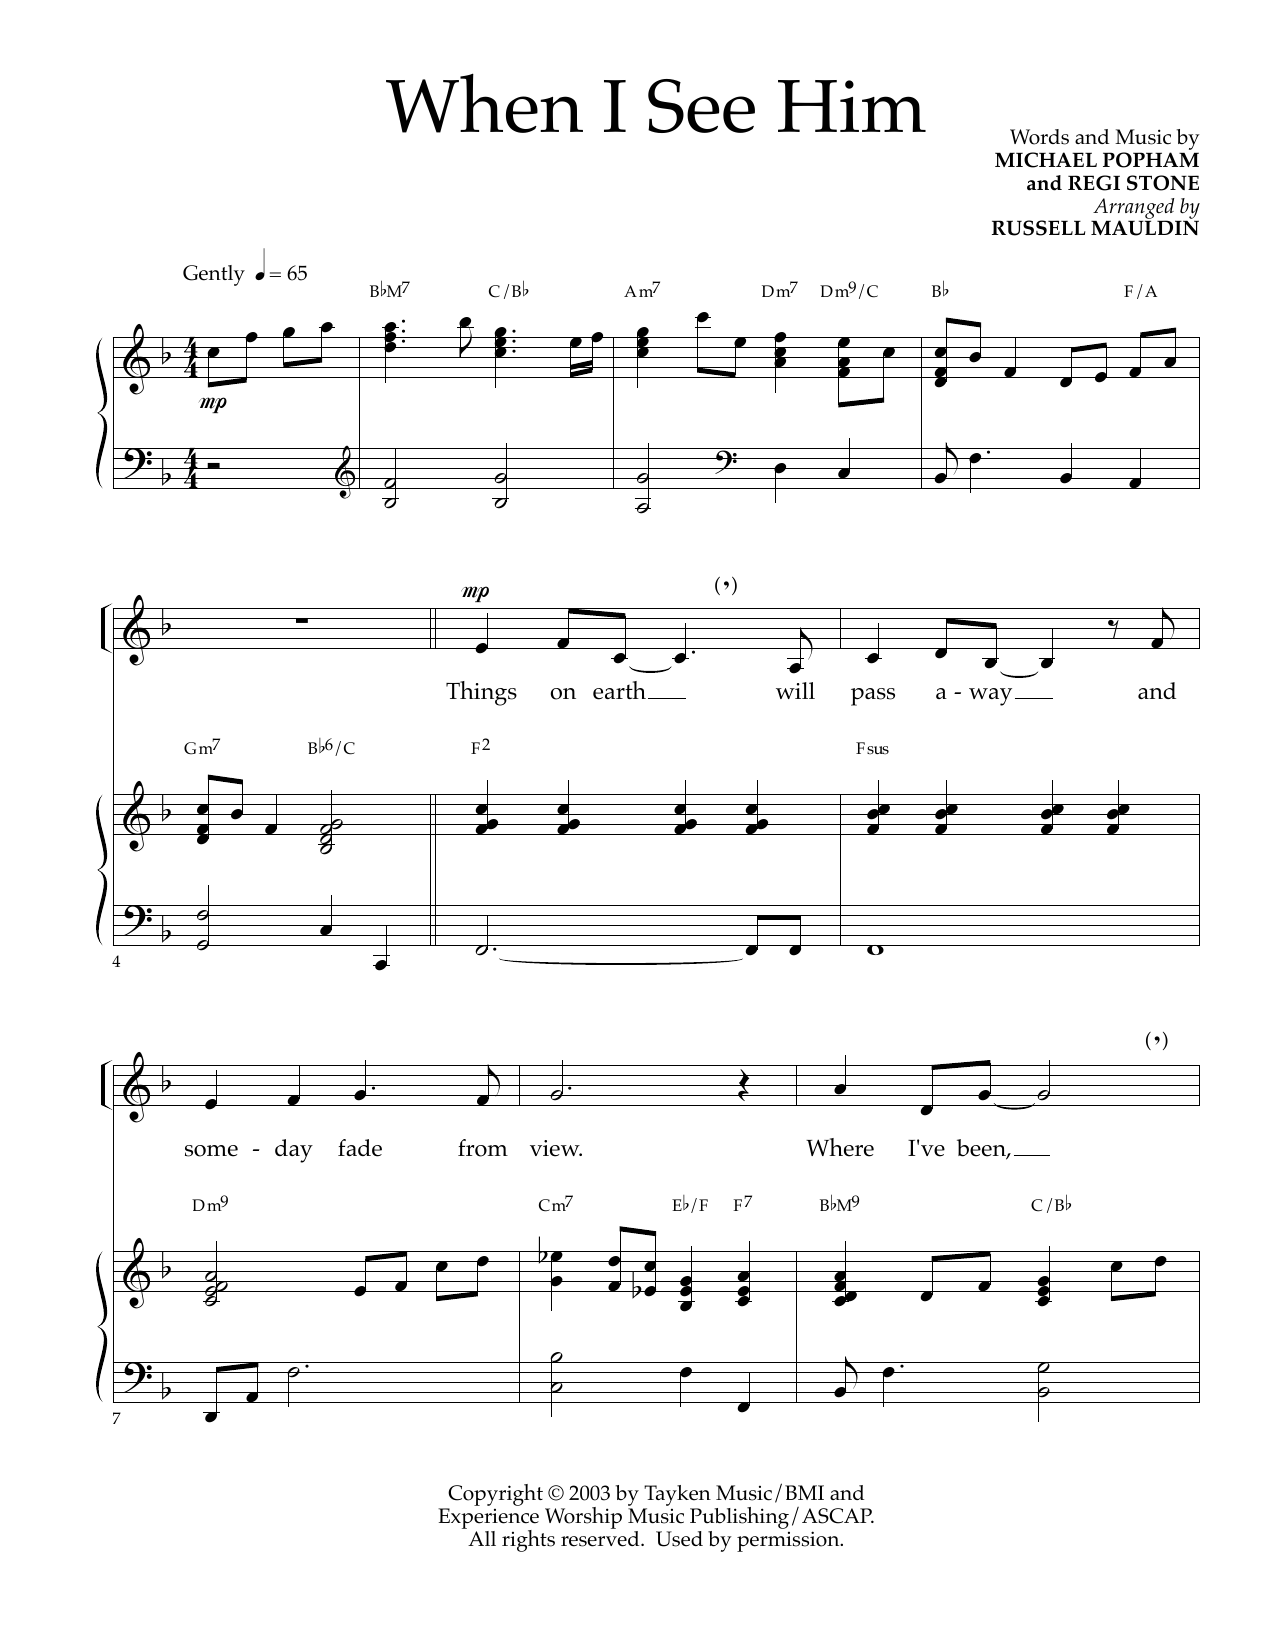 Michael Popham and Regi Stone When I See Him (arr. Russell Mauldin) sheet music notes and chords. Download Printable PDF.